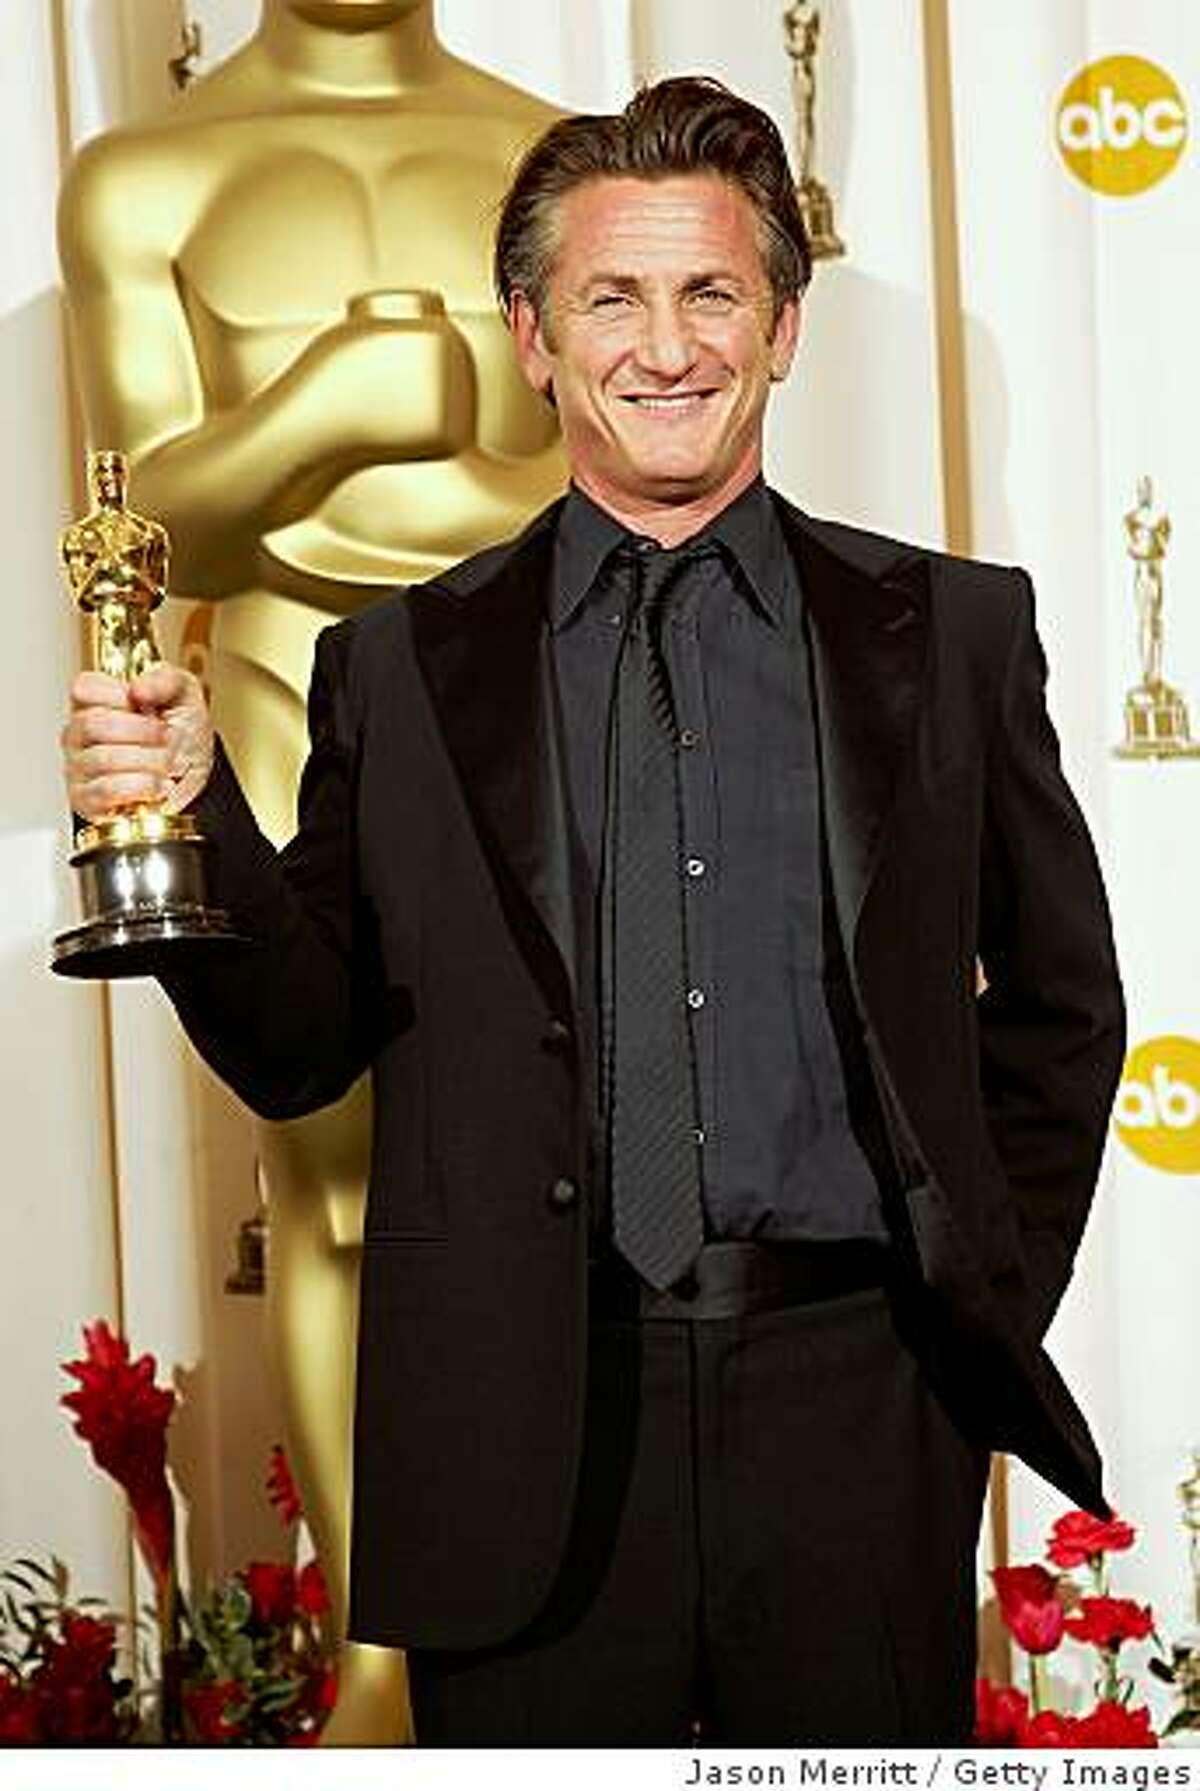 Actor Sean Penn poses in the press room after winning the award for Best Actor for